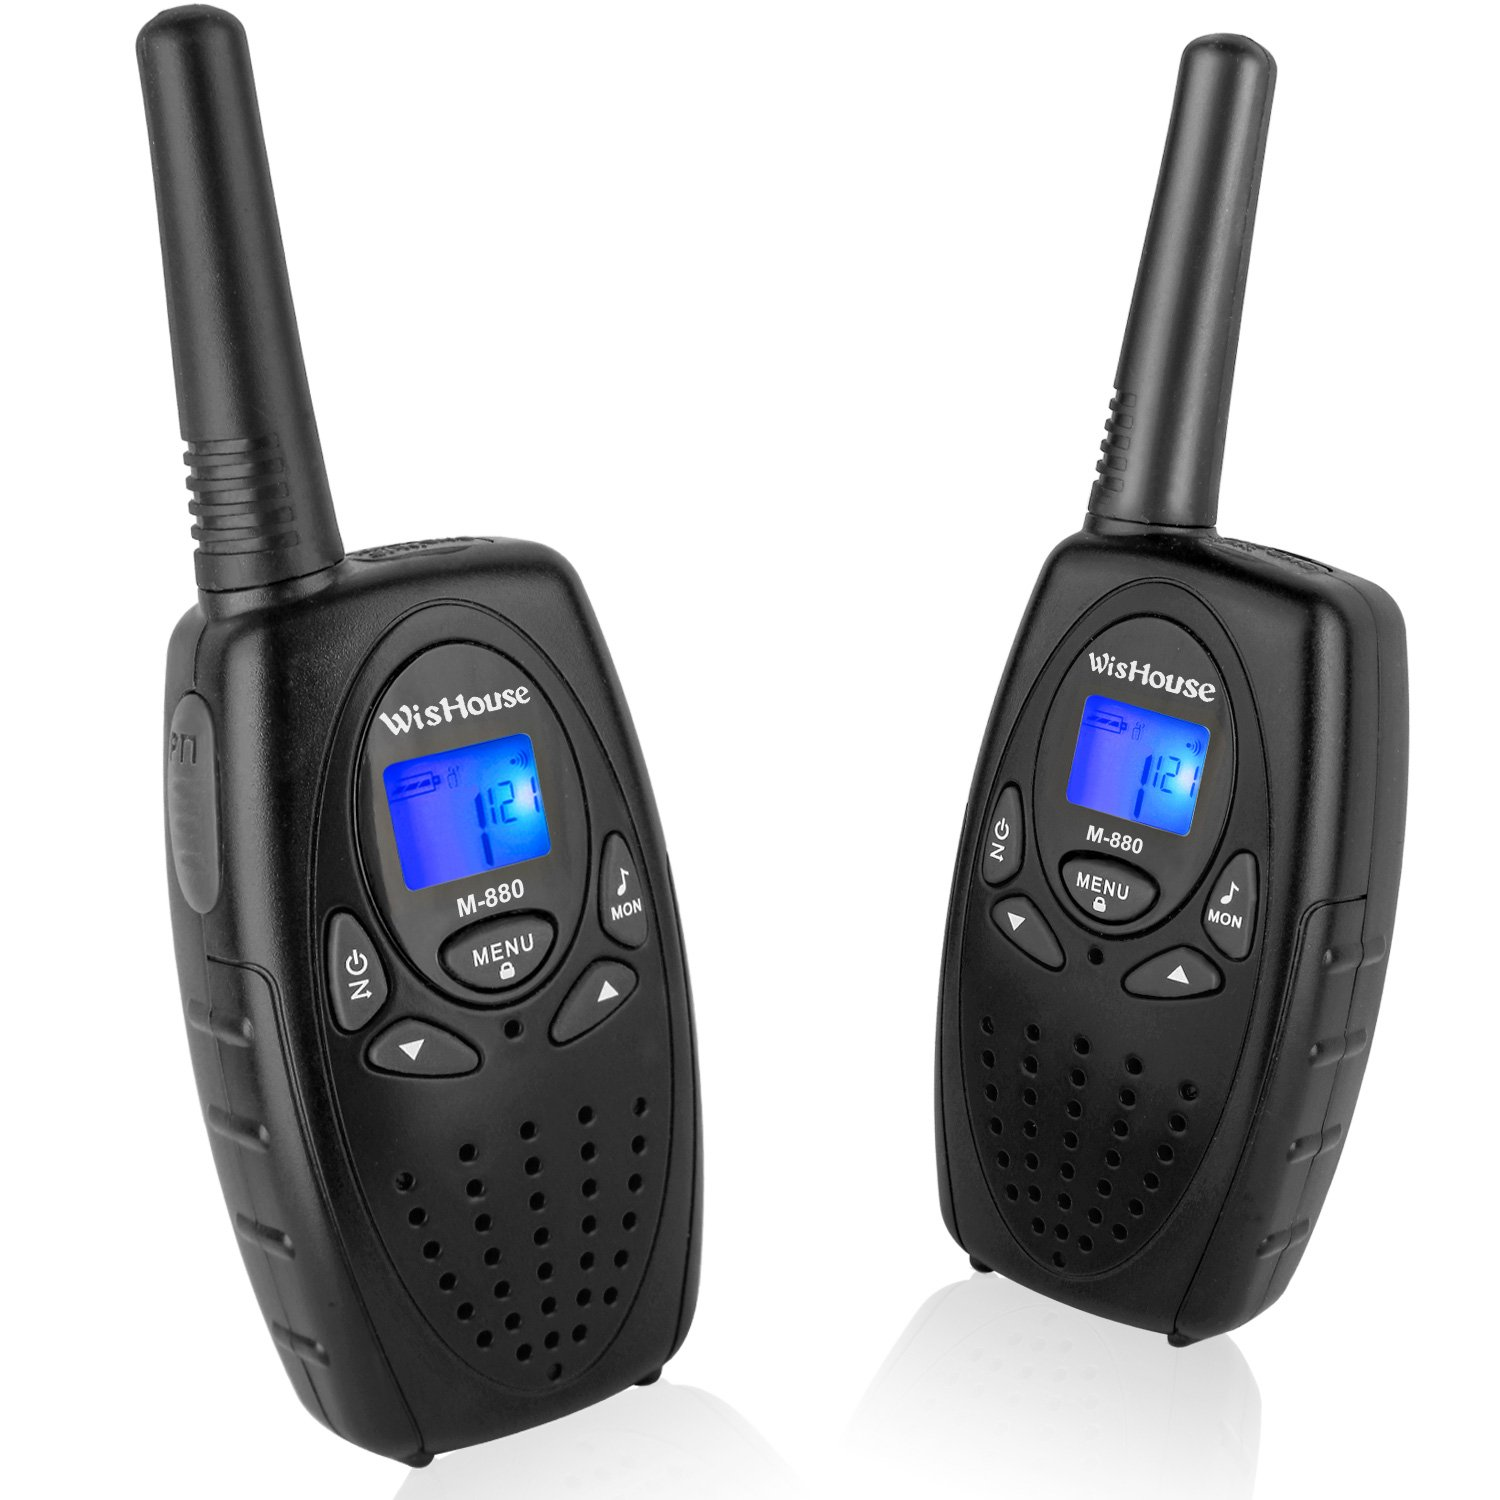 Walkie Talkies with Mic Vox Clip 22 Channels, Wishouse Adults Two Way Radio for Travel with 2.5mm Jack 3 Mile Range Noise Cancelling Loud Speaker Walky Talky for Family Trip Cruise (M880 Black 1 Pair)